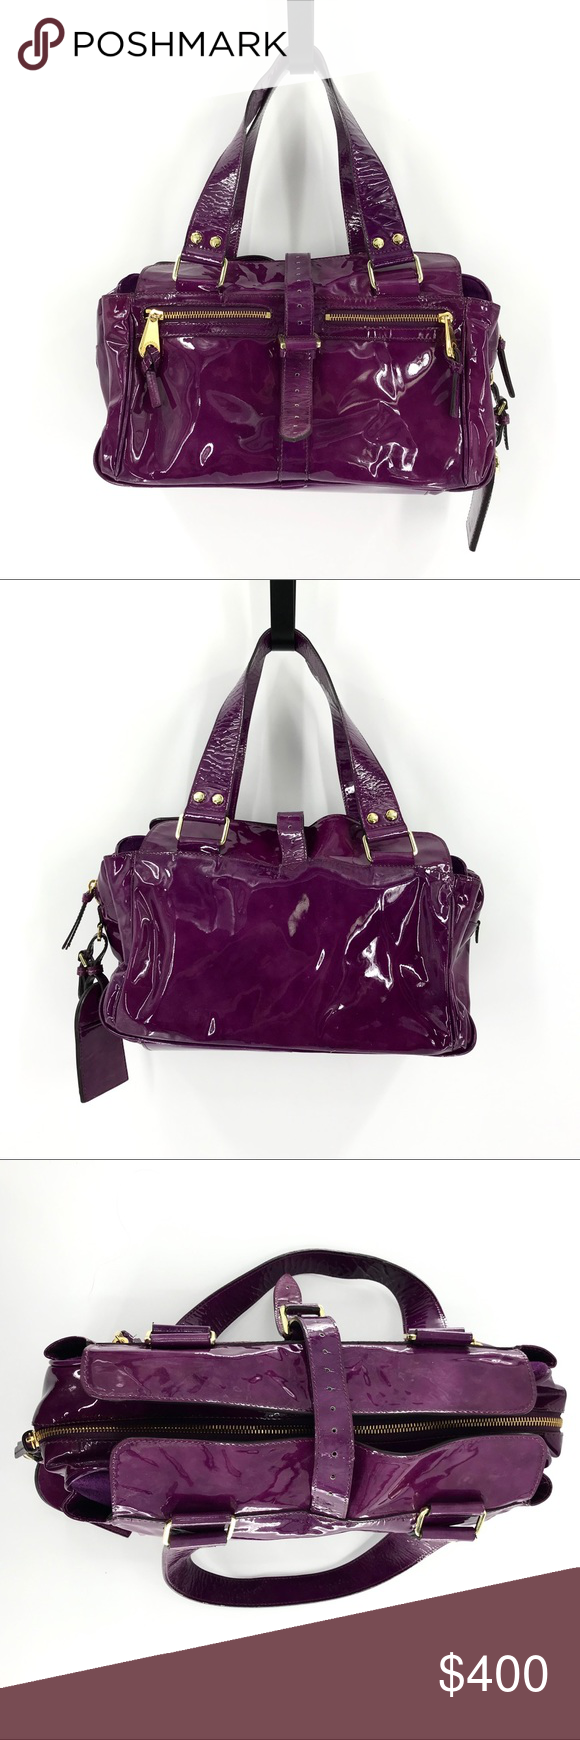 Mulberry Mabel patent leather handbag in wine The Mabel purse from Mulberry  in a purple wine dd0180df449a2